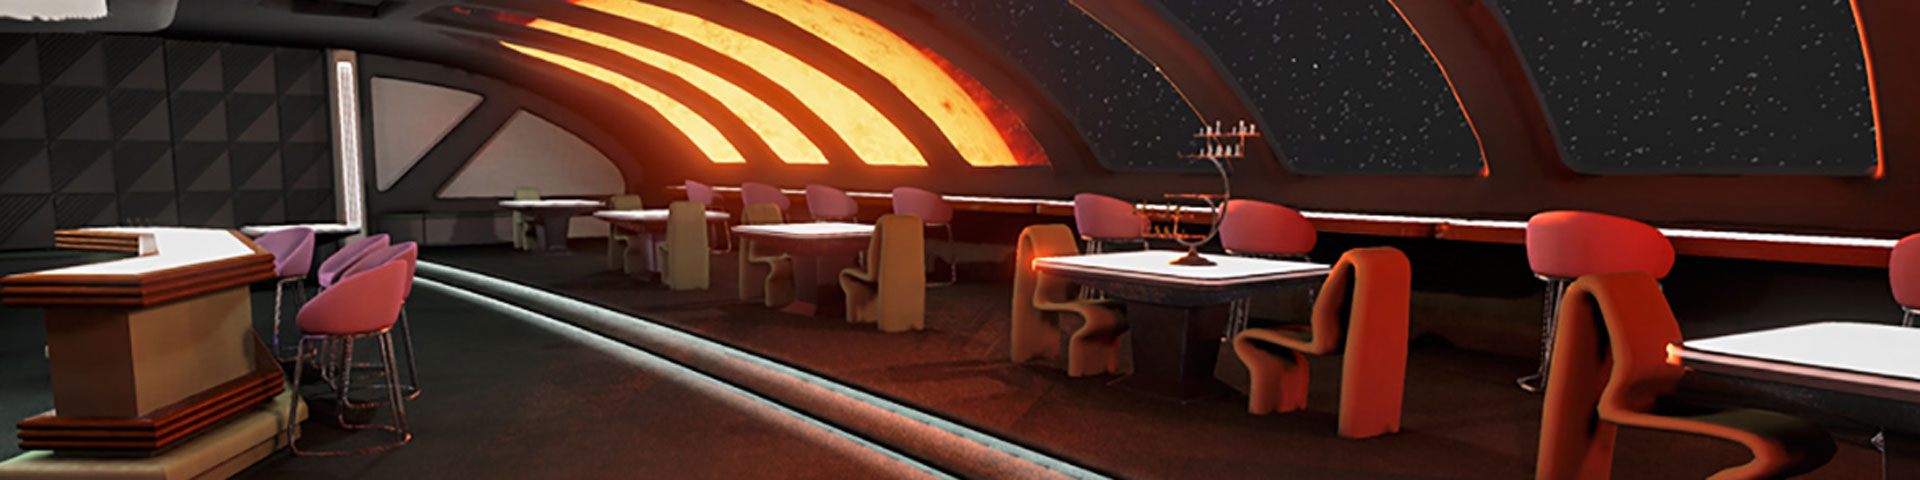 A lounge in space. A bar can be seen to the left; tables with seats look out on space on the right